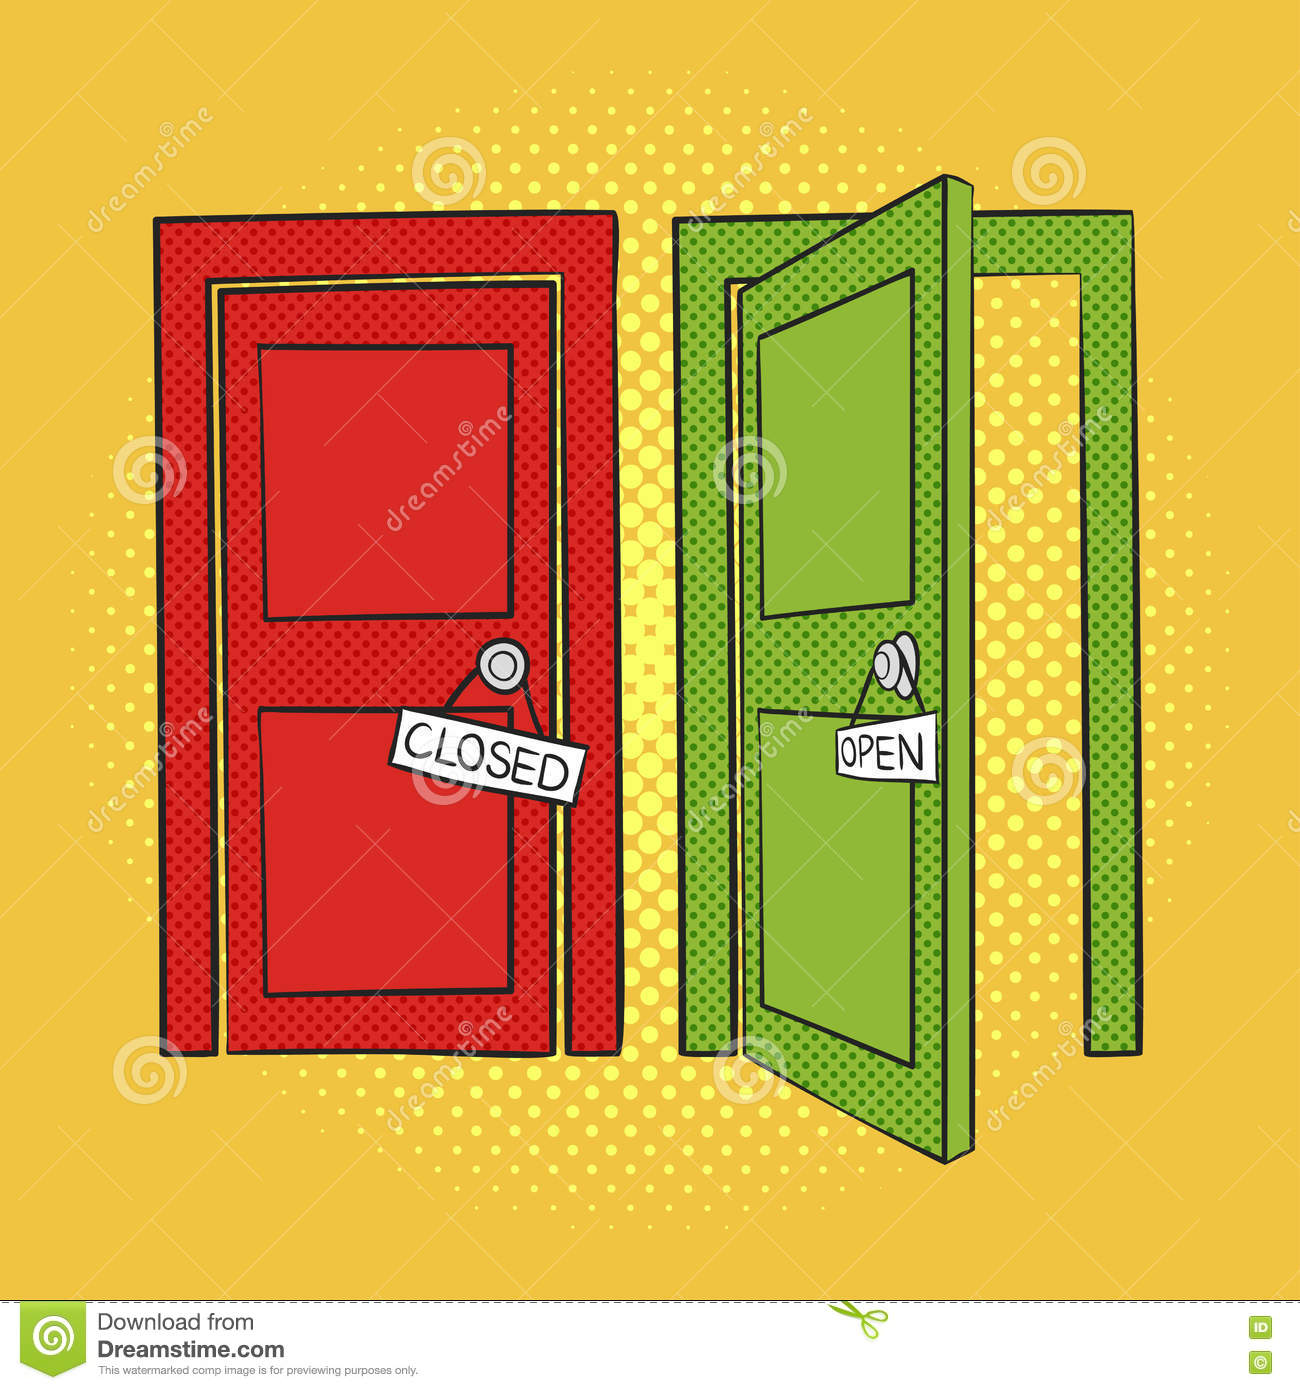 Royalty-Free Vector  sc 1 st  Dreamstime.com & Vector Hand Drawn Pop Art Illustration Of Doors. Open And Closed ... pezcame.com